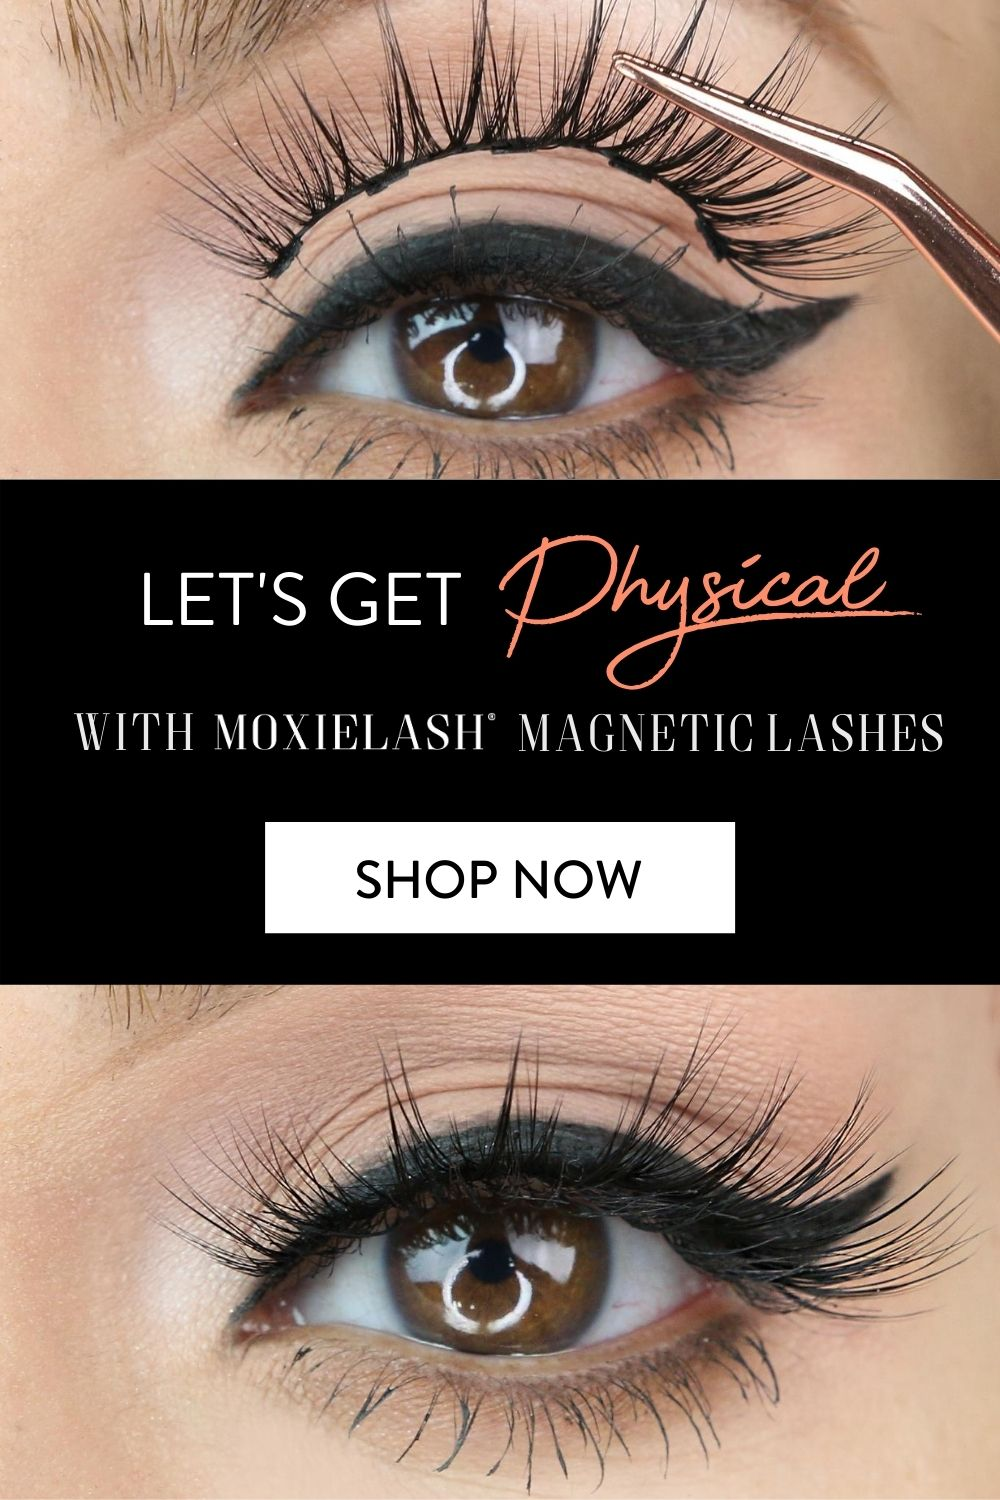 Let's Get Physical With Moxielash Lashes in 2020